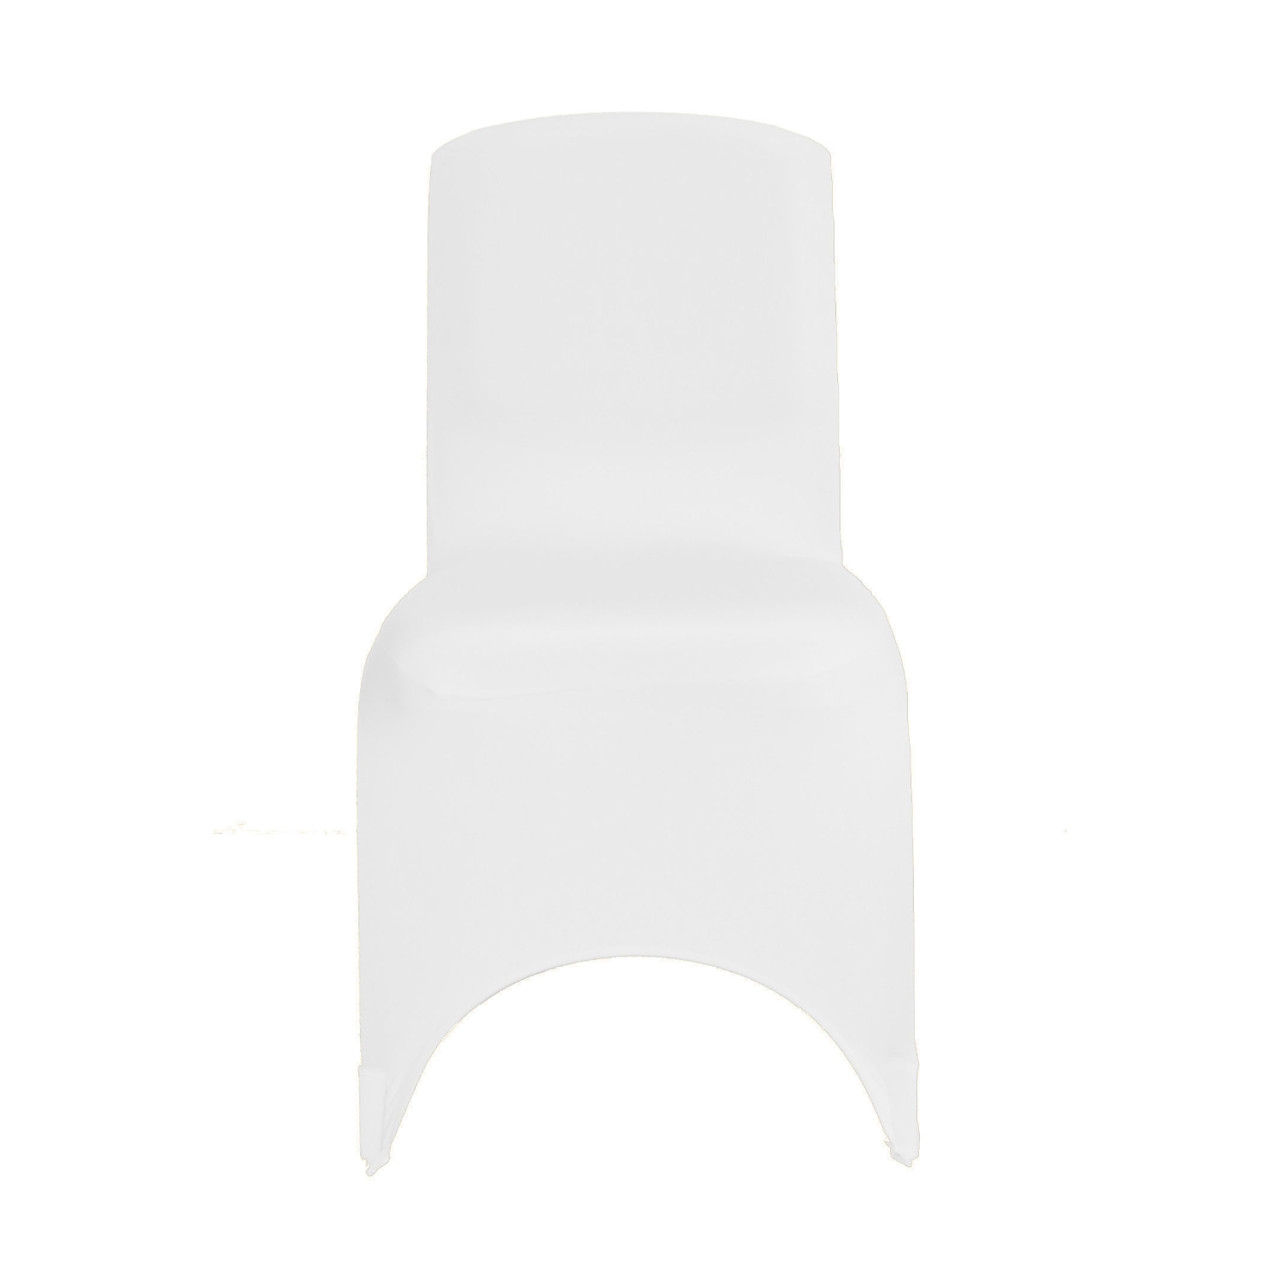 Square Top Stretch Spandex Banquet Chair Cover White